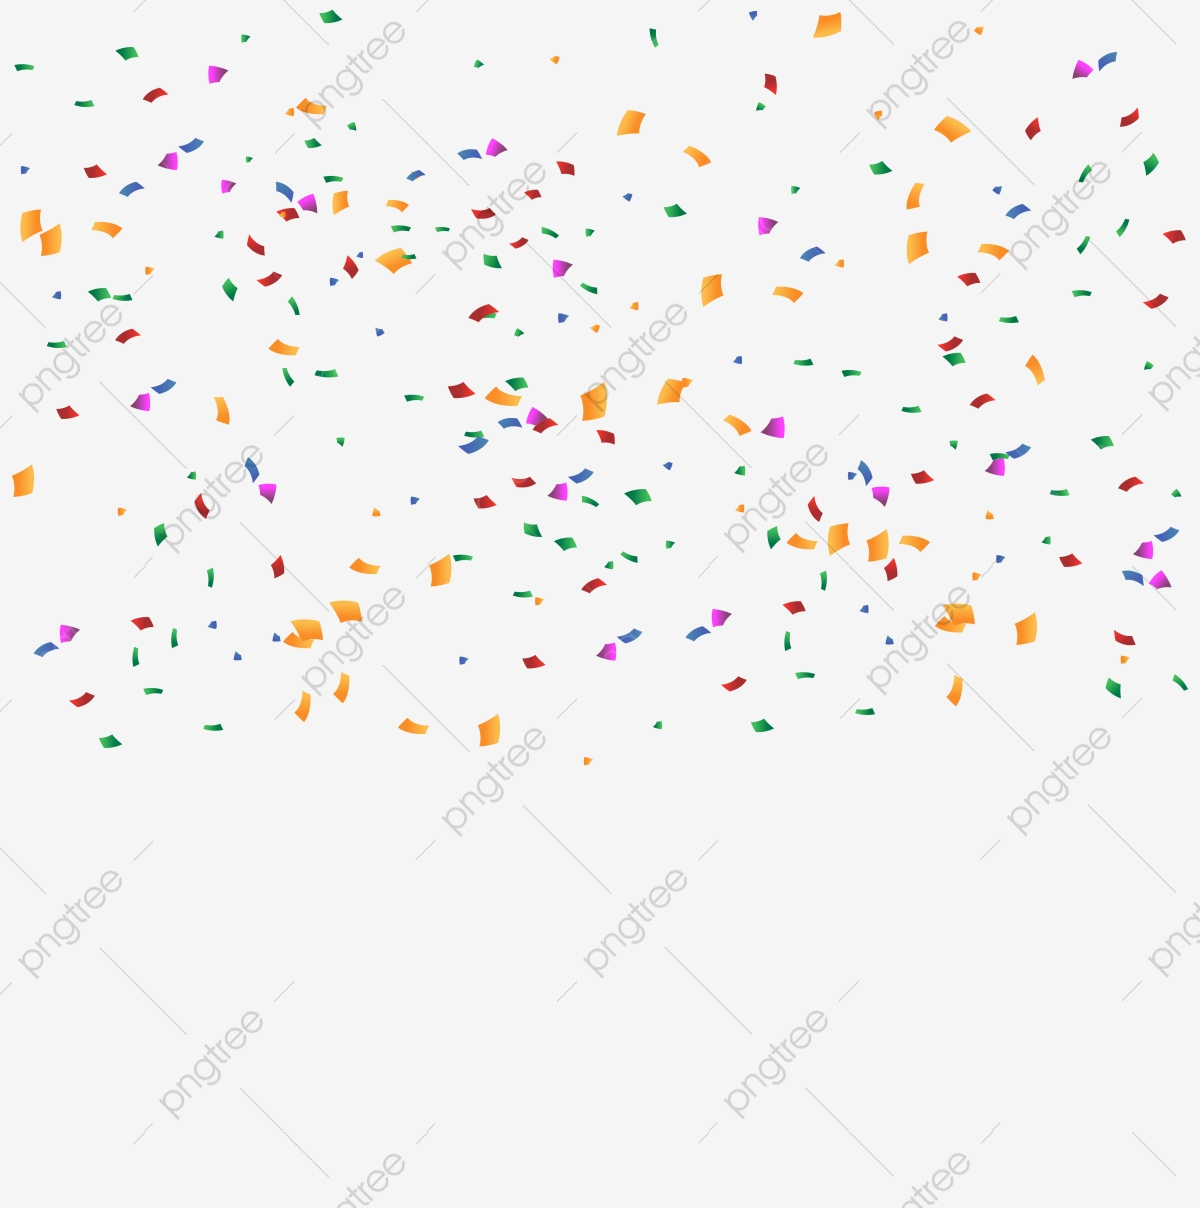 Colorful Birthday Confetti Transparent Background Birthday Icons Transparent Icons Background Icons Png And Vector With Transparent Background For Free Download Please, do not forget to link to confetti png transparent backgrounds, white, silver. https pngtree com freepng colorful birthday confetti transparent background 4327913 html